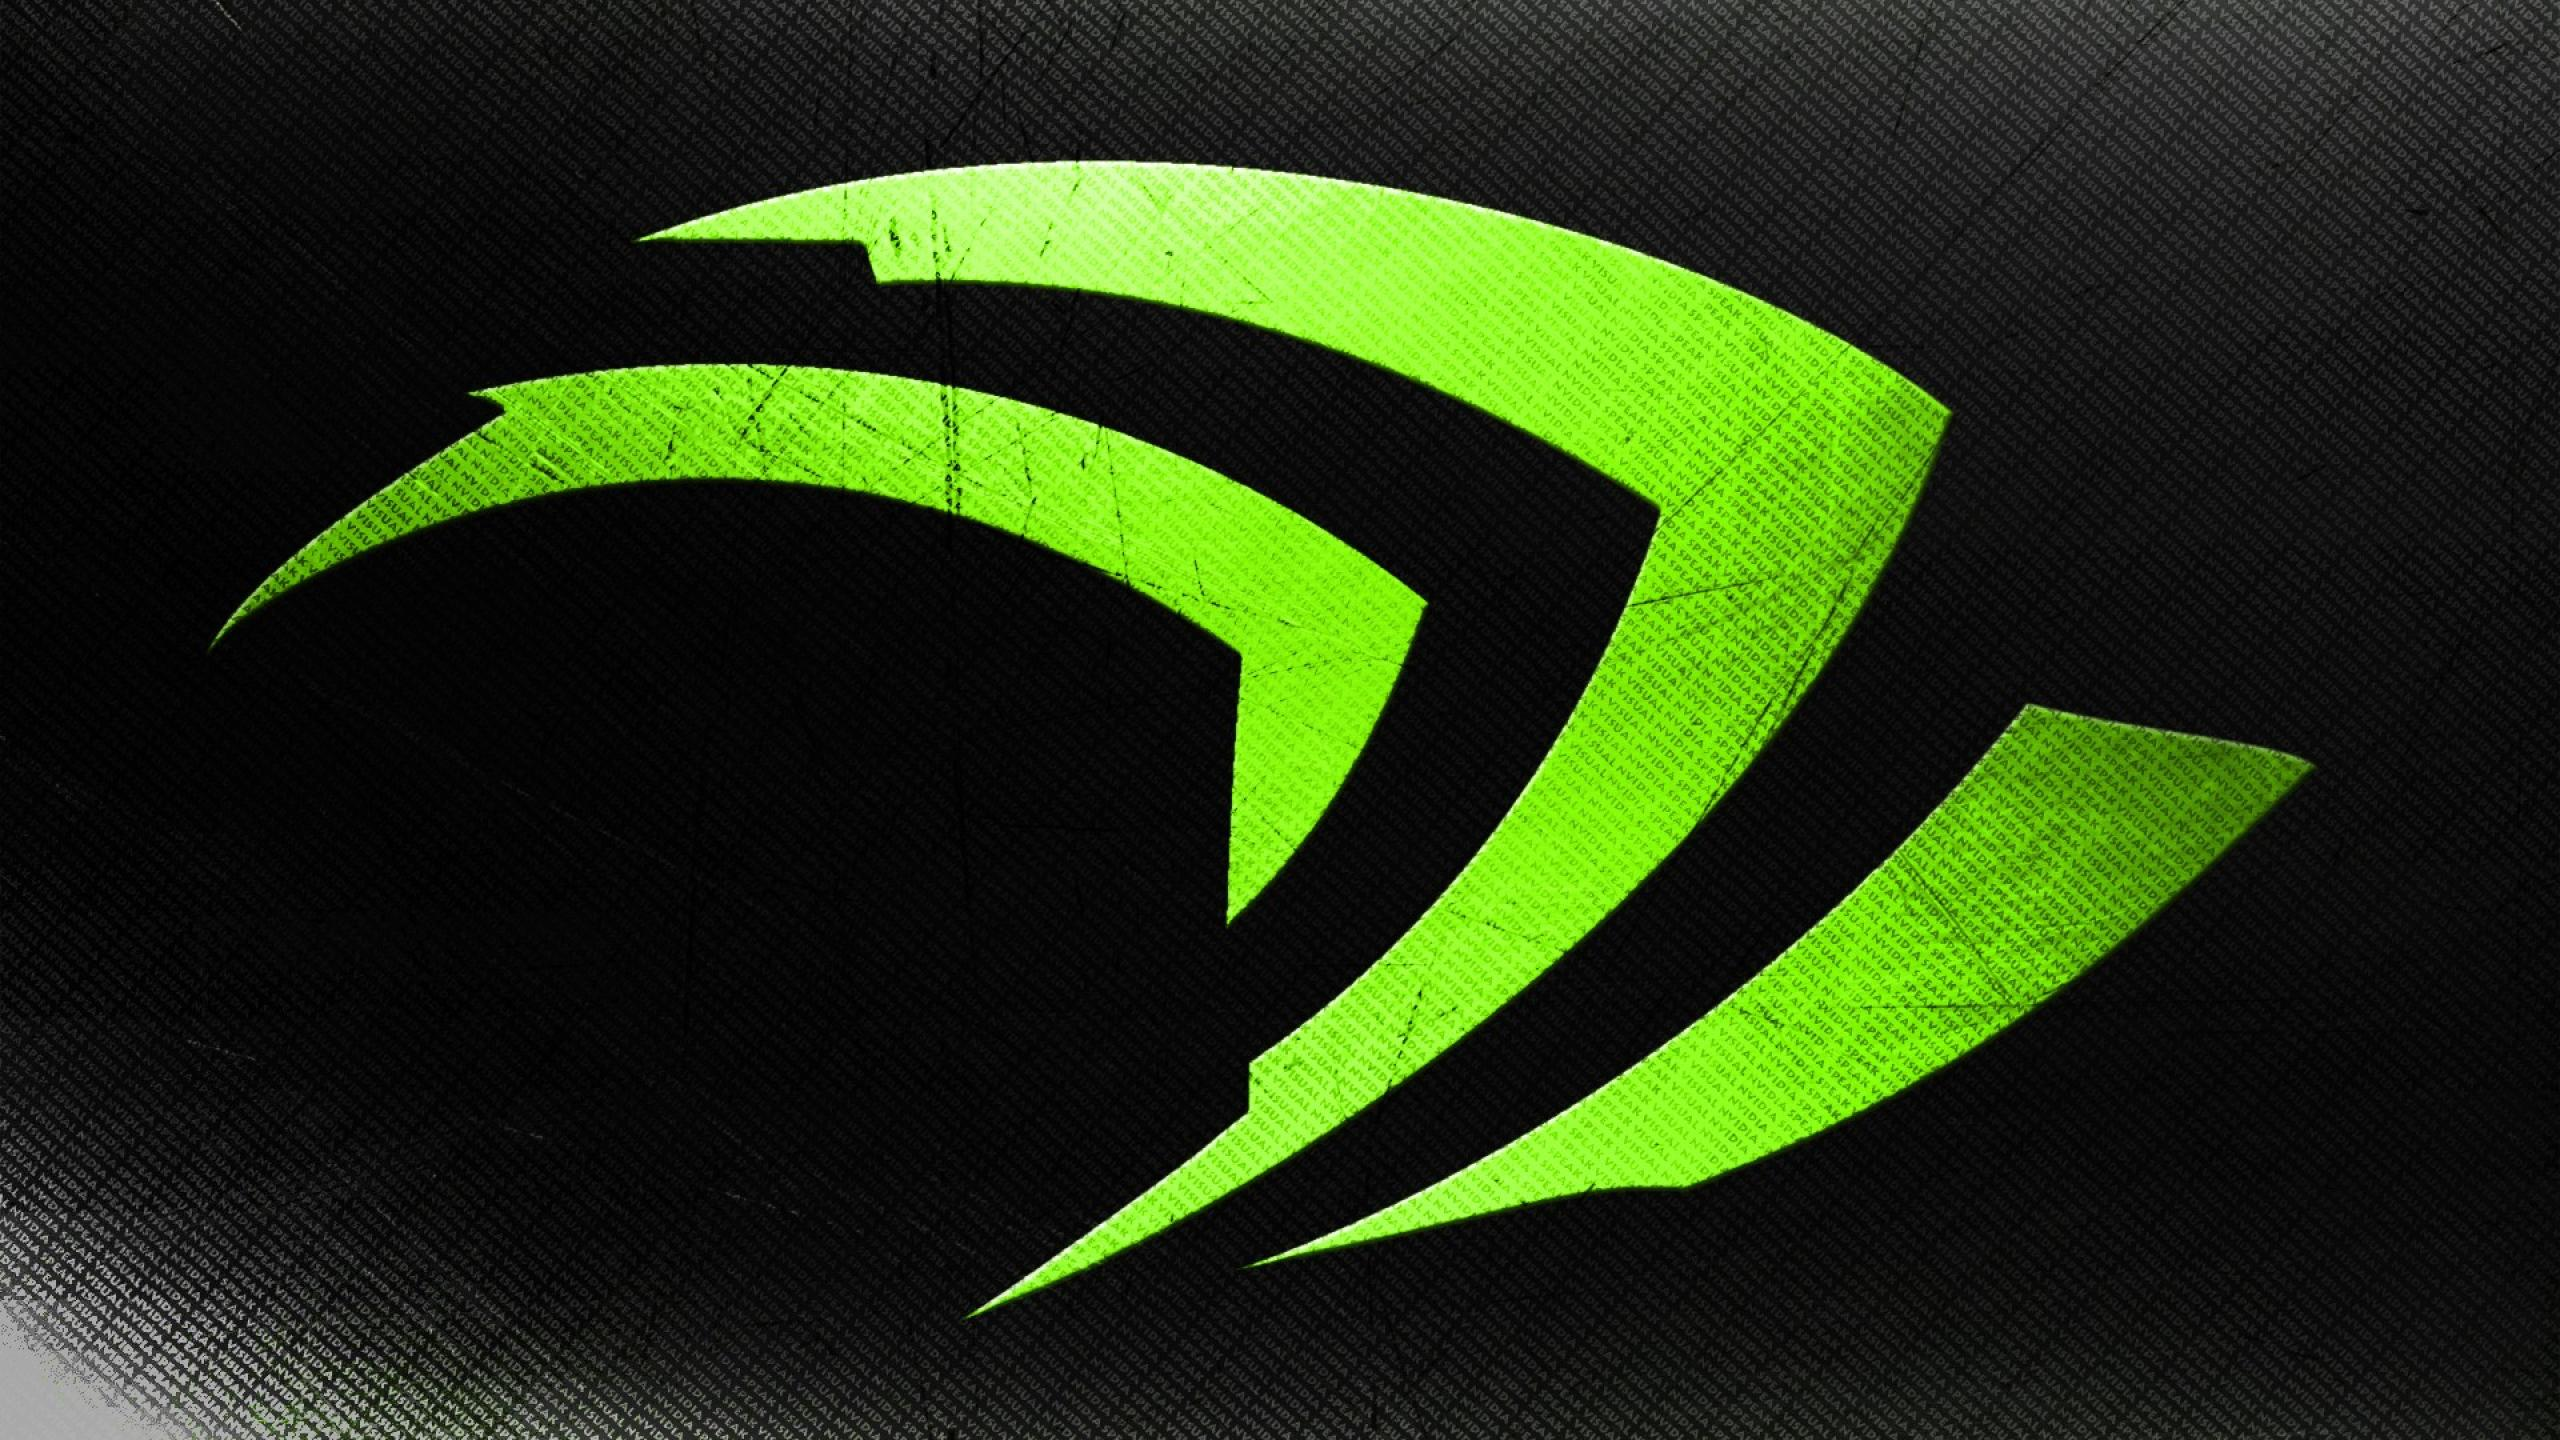 nvidia wallpaper 3840x2160 wallpapersafari